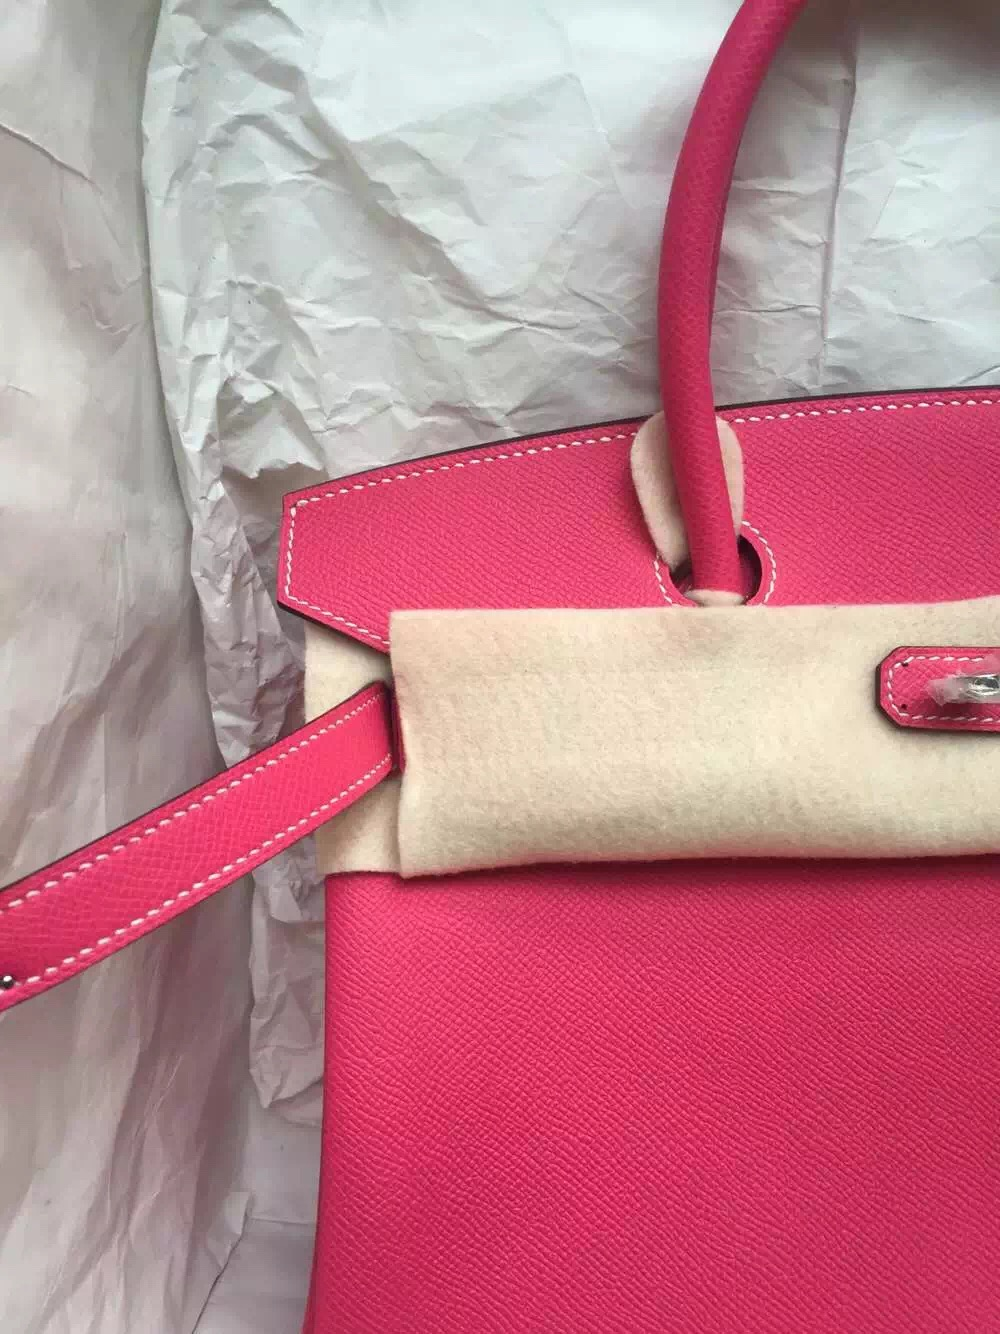 Hand Stitching Hermes Birkin Bag E5 Candy Pink/2T Blue Paradise Epsom Leather 30cm